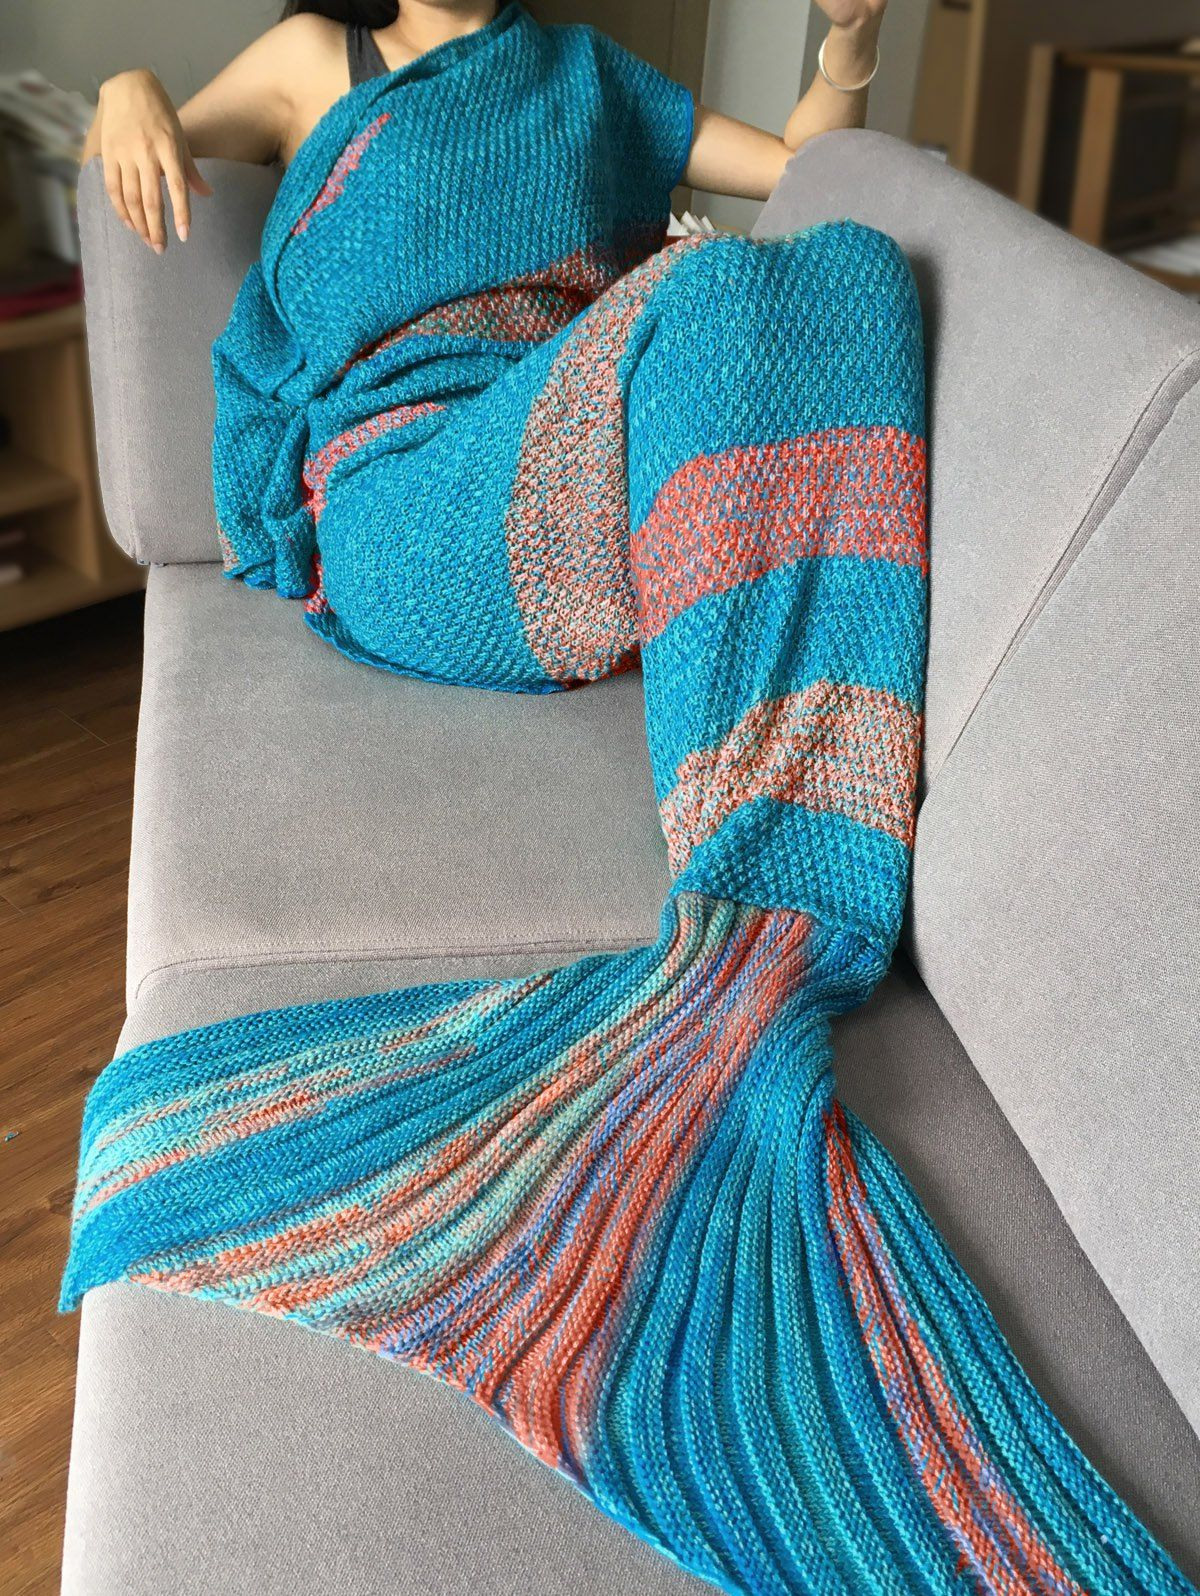 Sleeping Bag Crochet Stripe Pattern Mermaid Tail Blanket | Pinterest ...